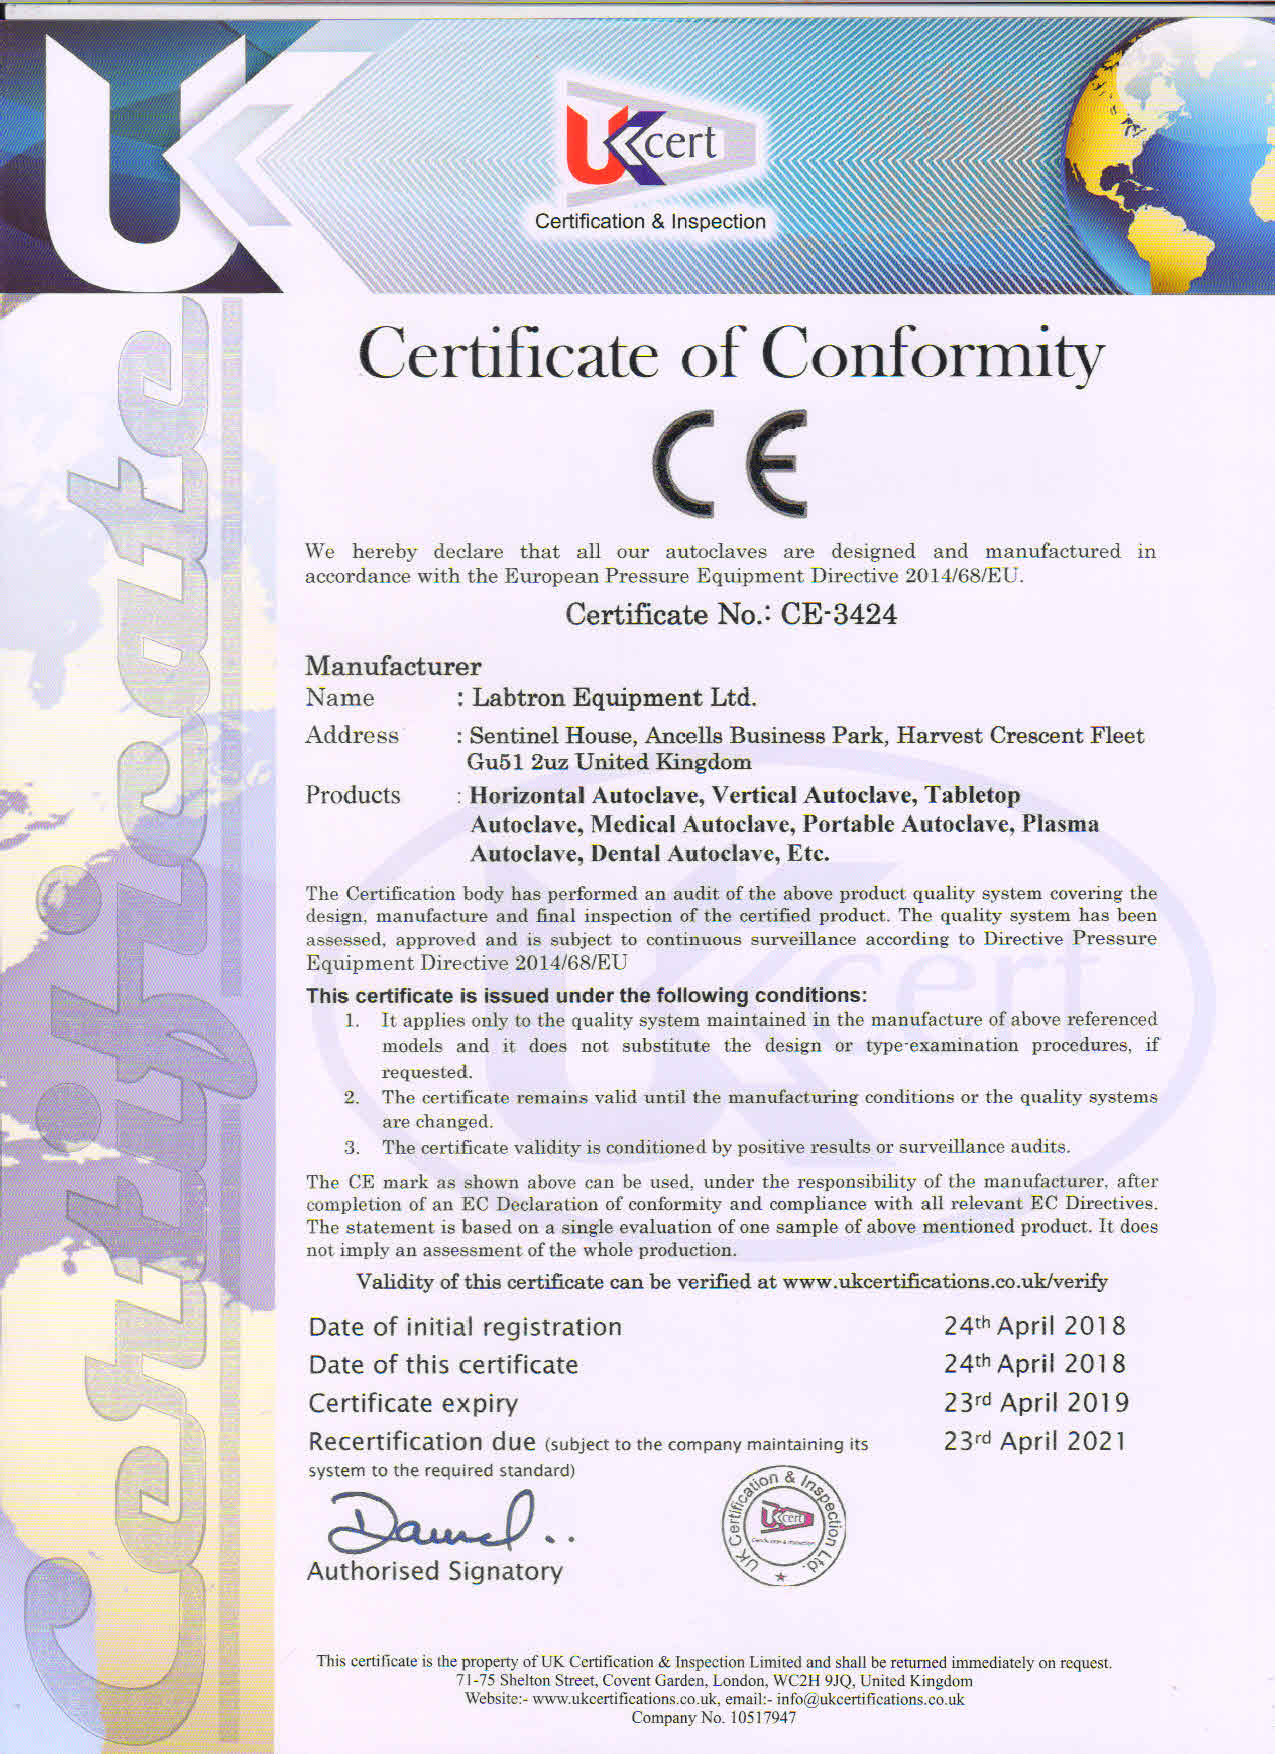 Labtron Equipment Ltd. ISO 9001 UKCert : Labtron Certification